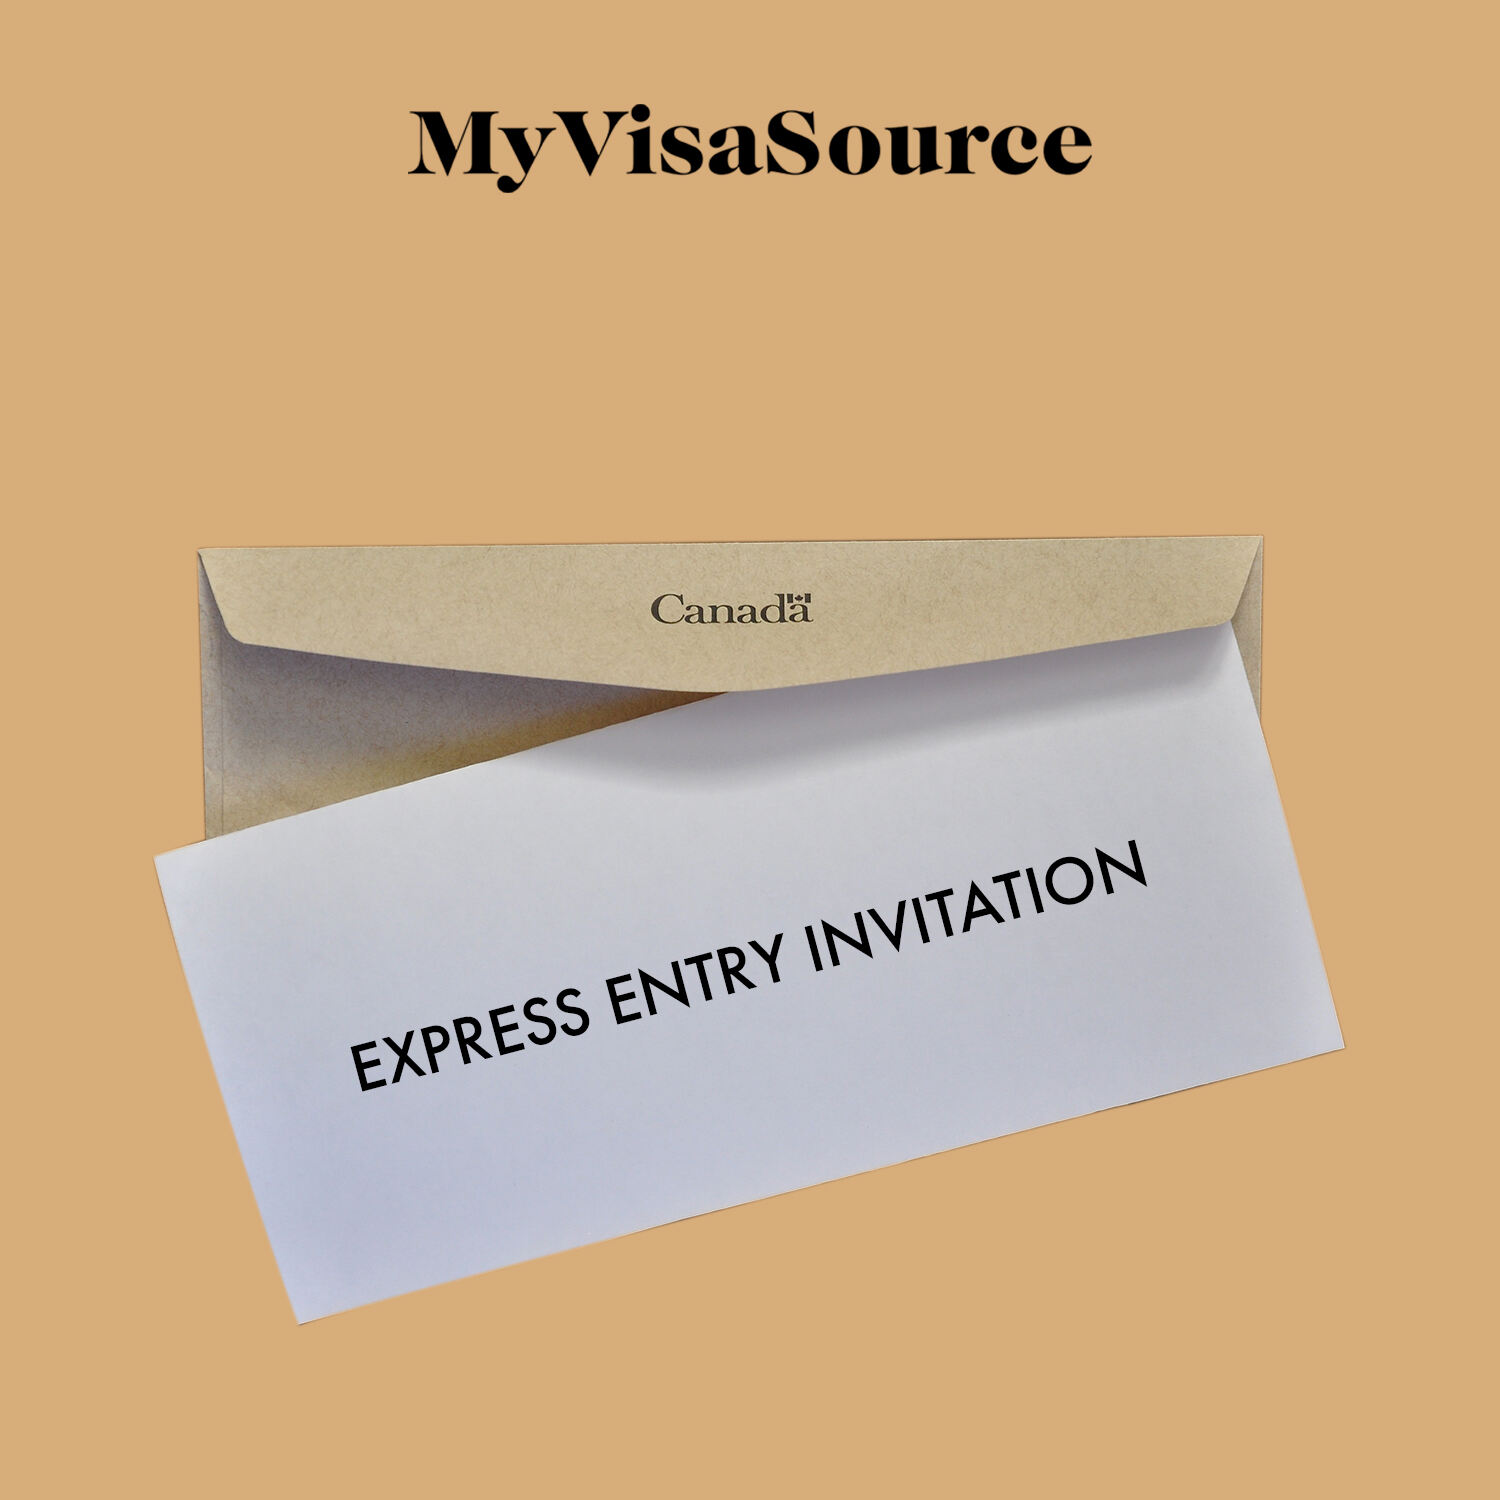 envelope with express entry invitation taken out my visa source